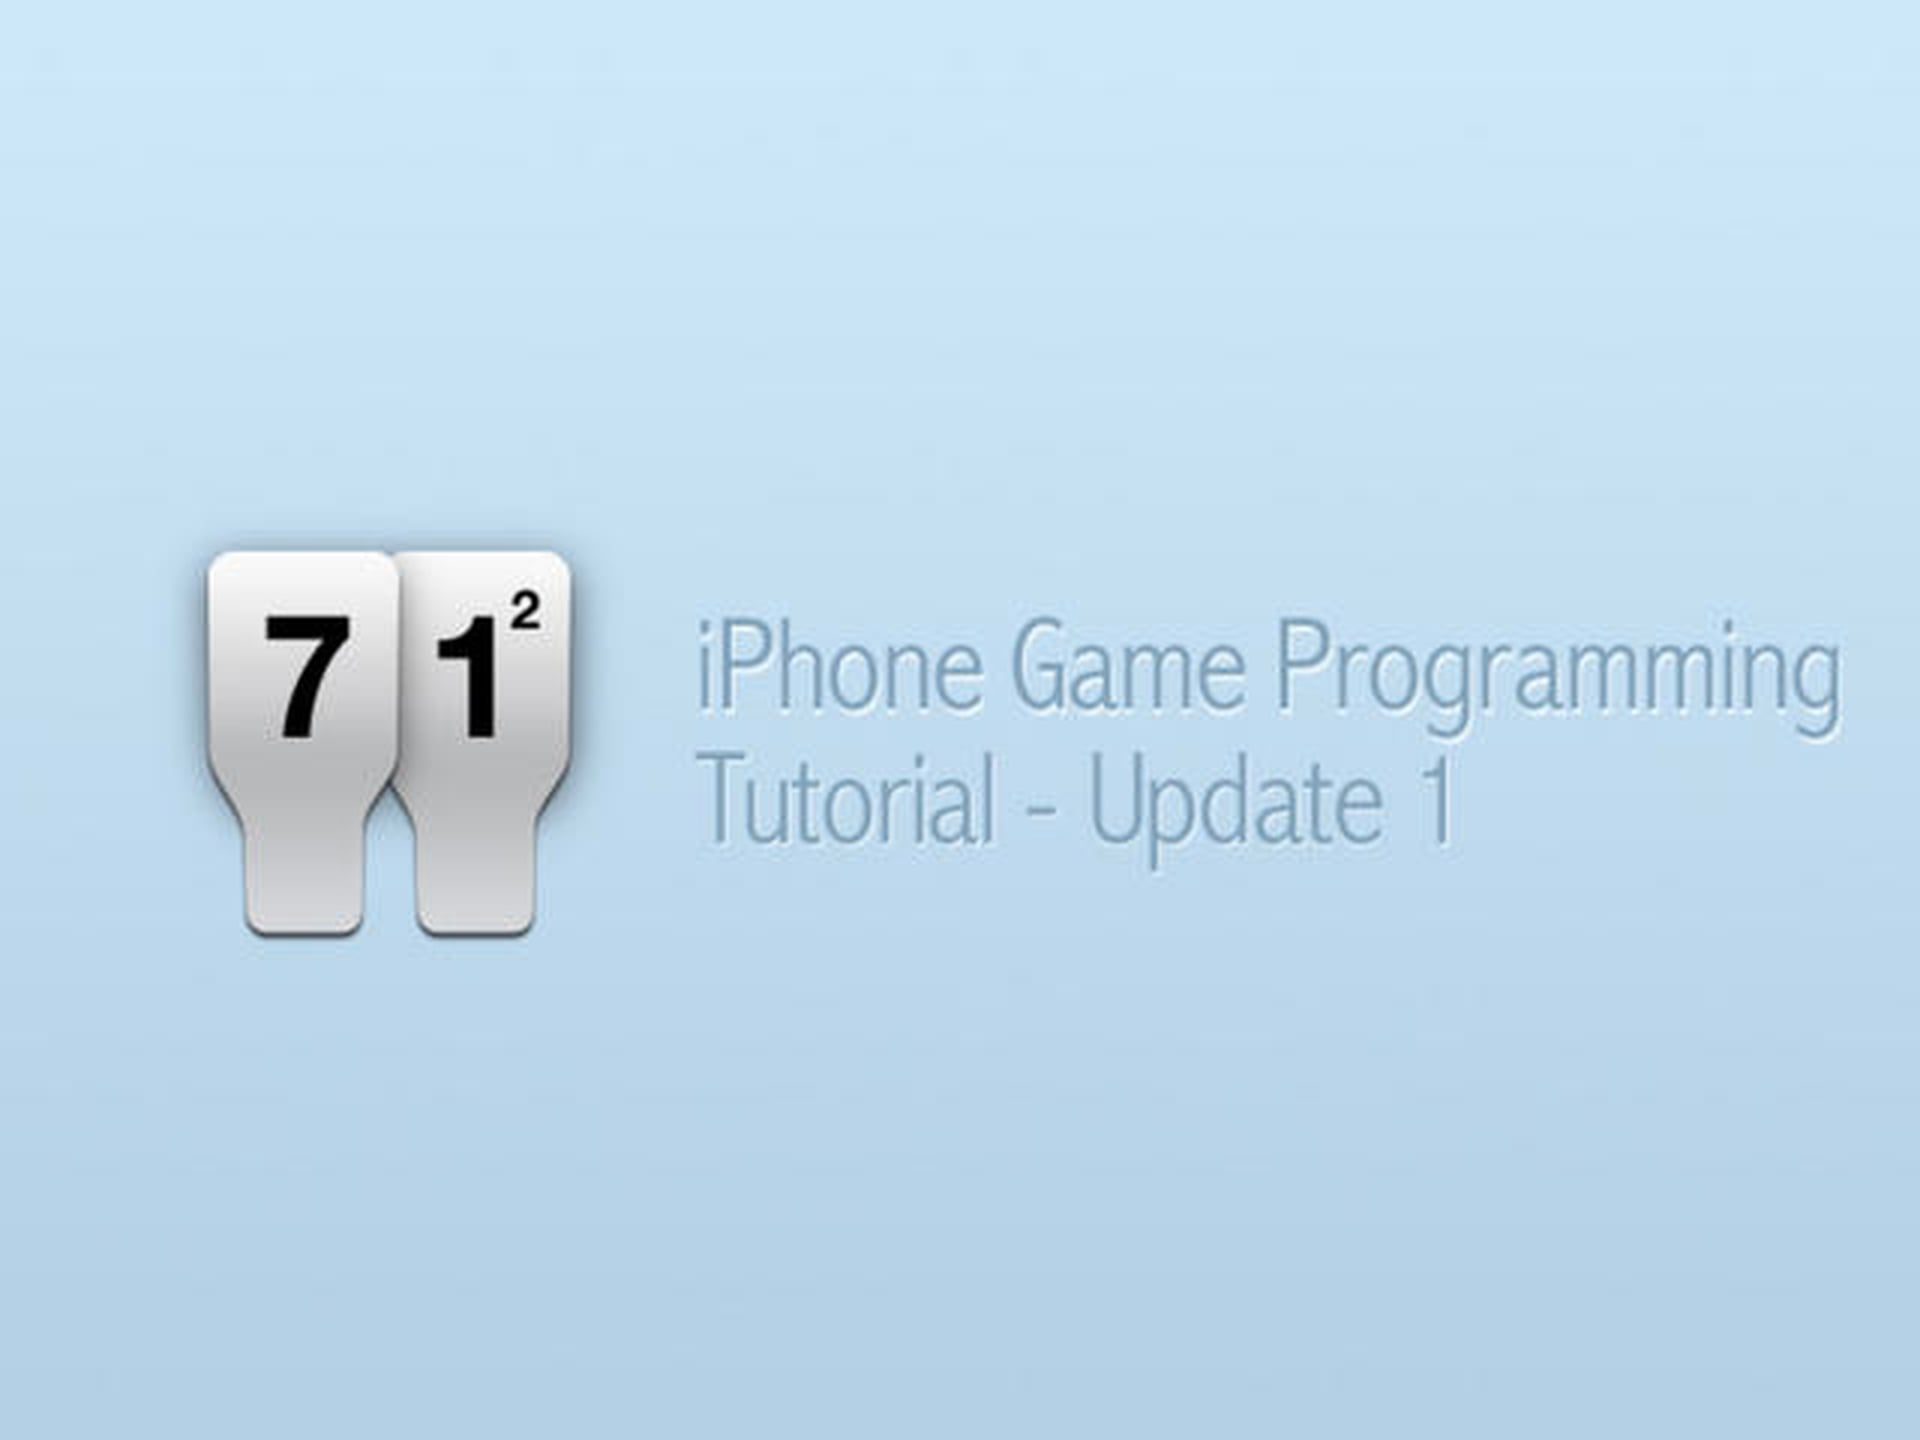 iPhone Game Programming – Tutorial Update 1